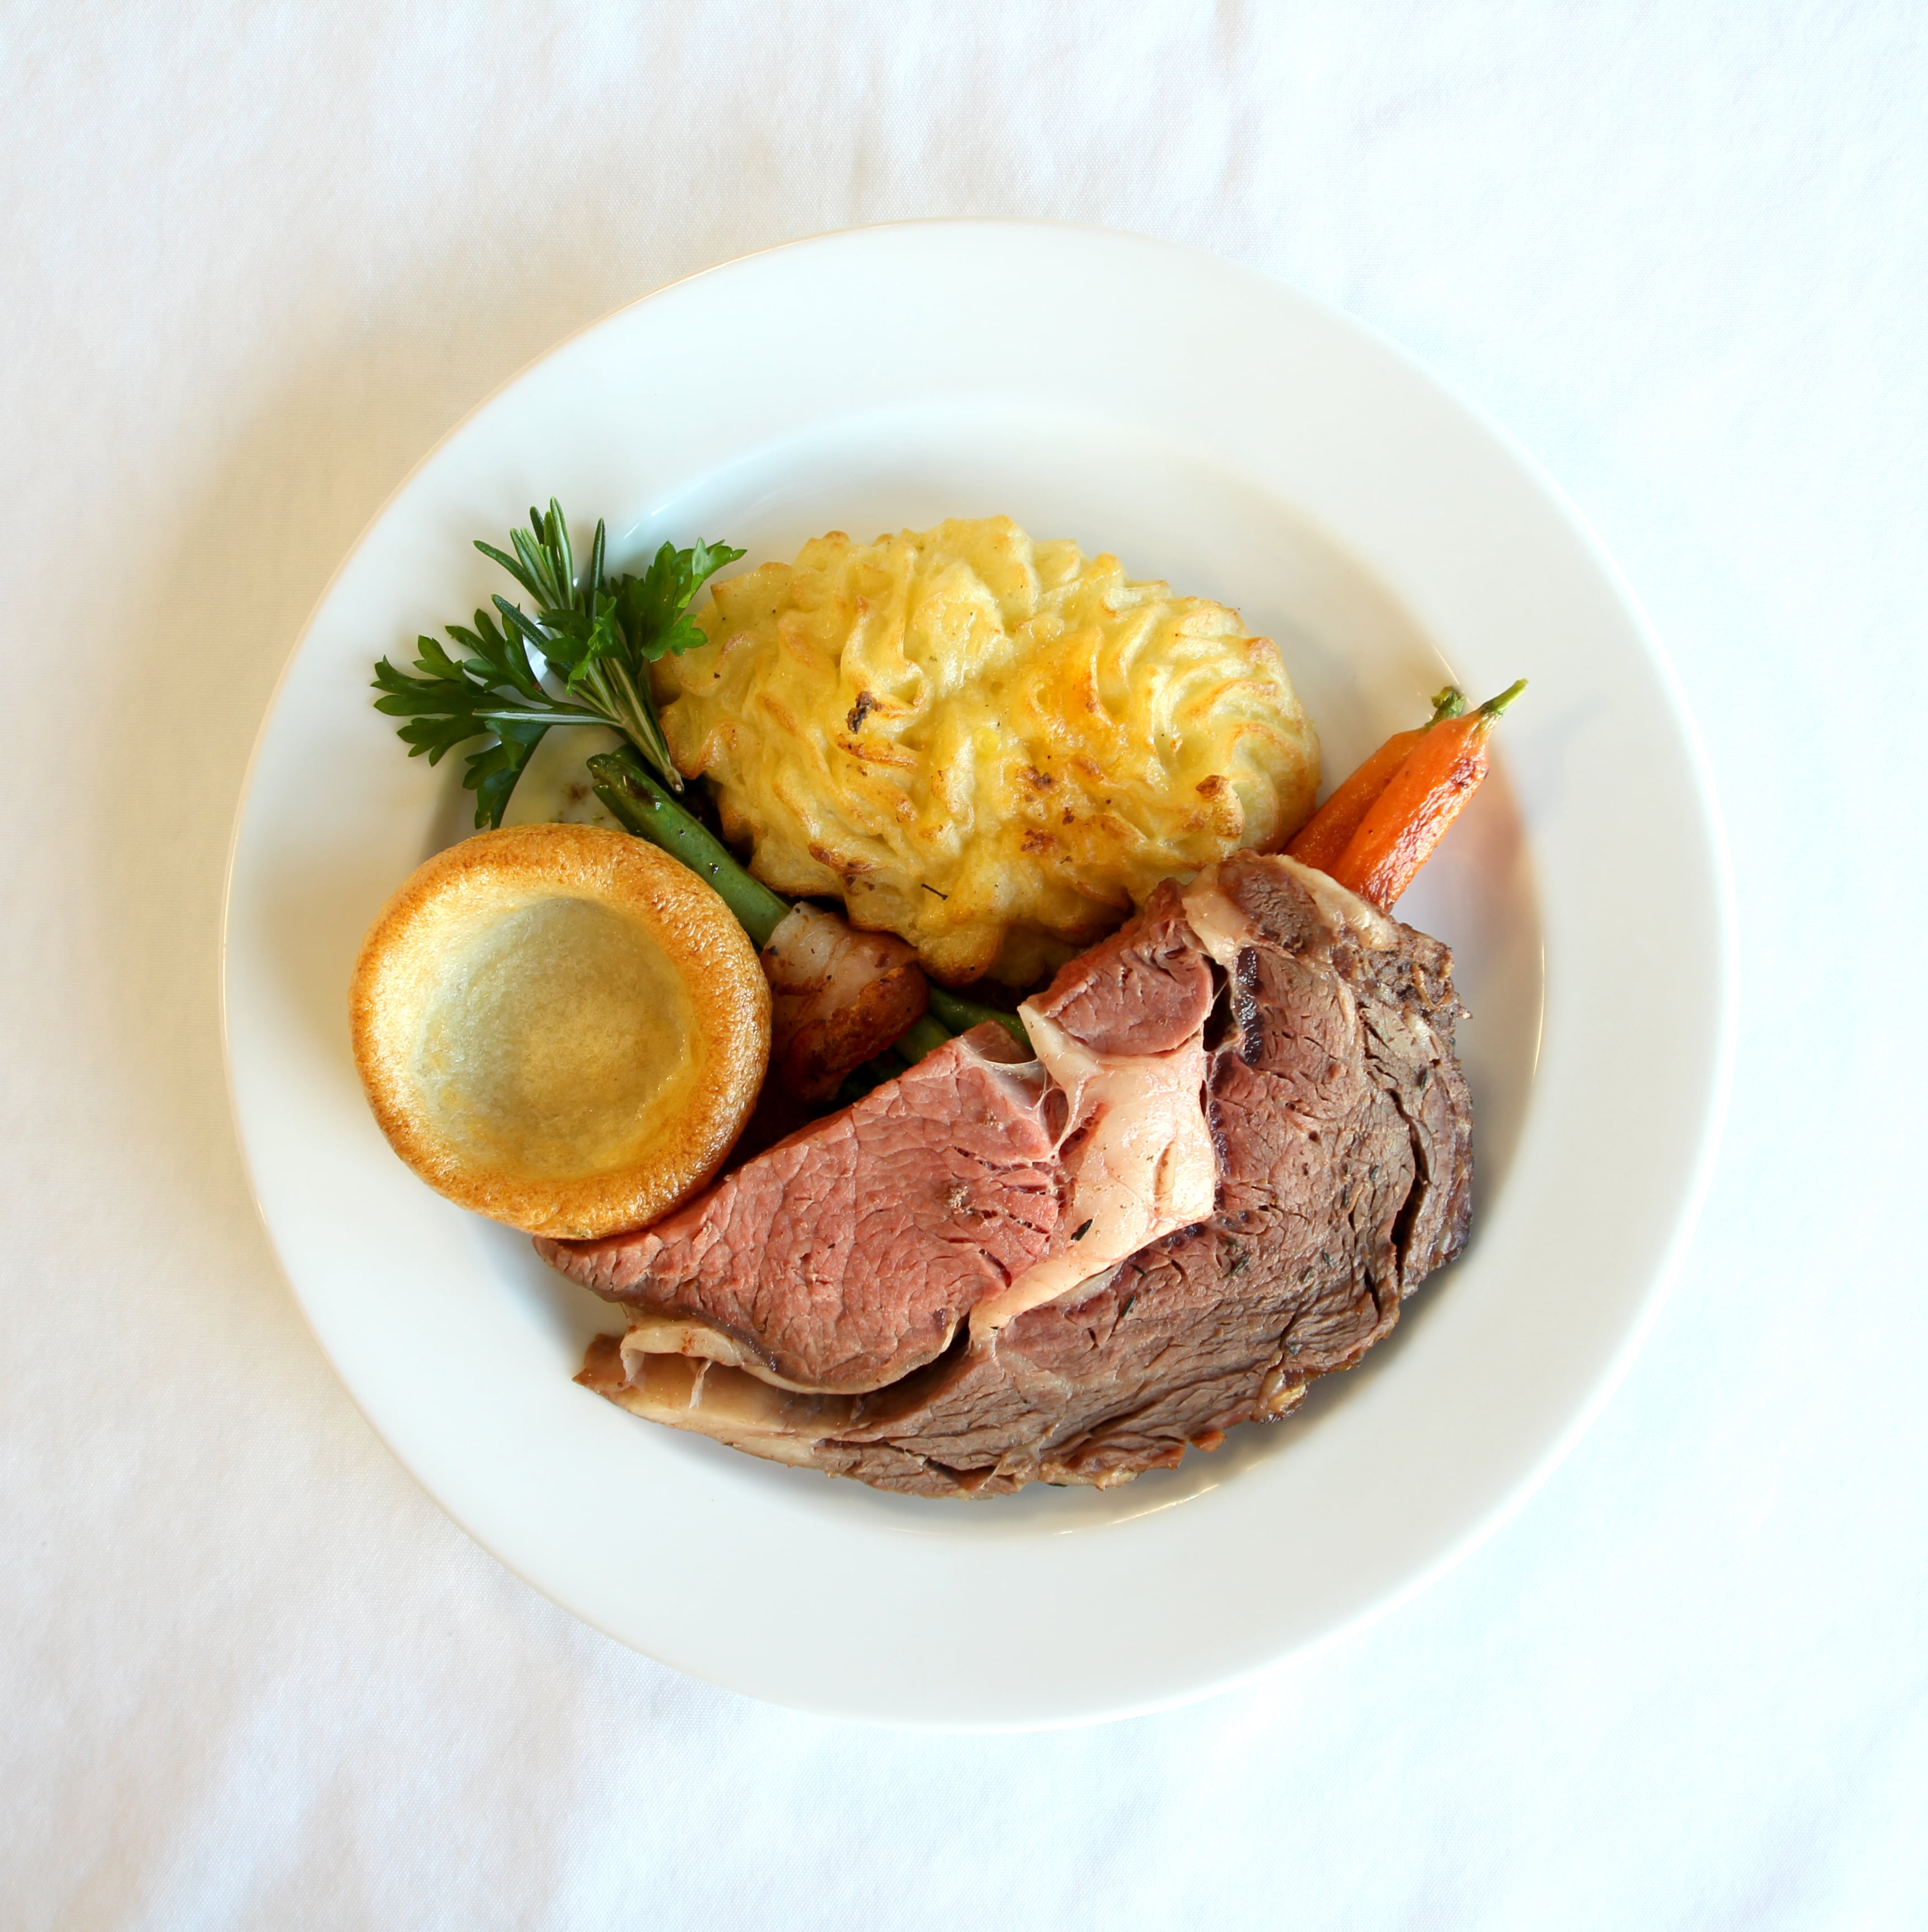 The prime rib was done just right!